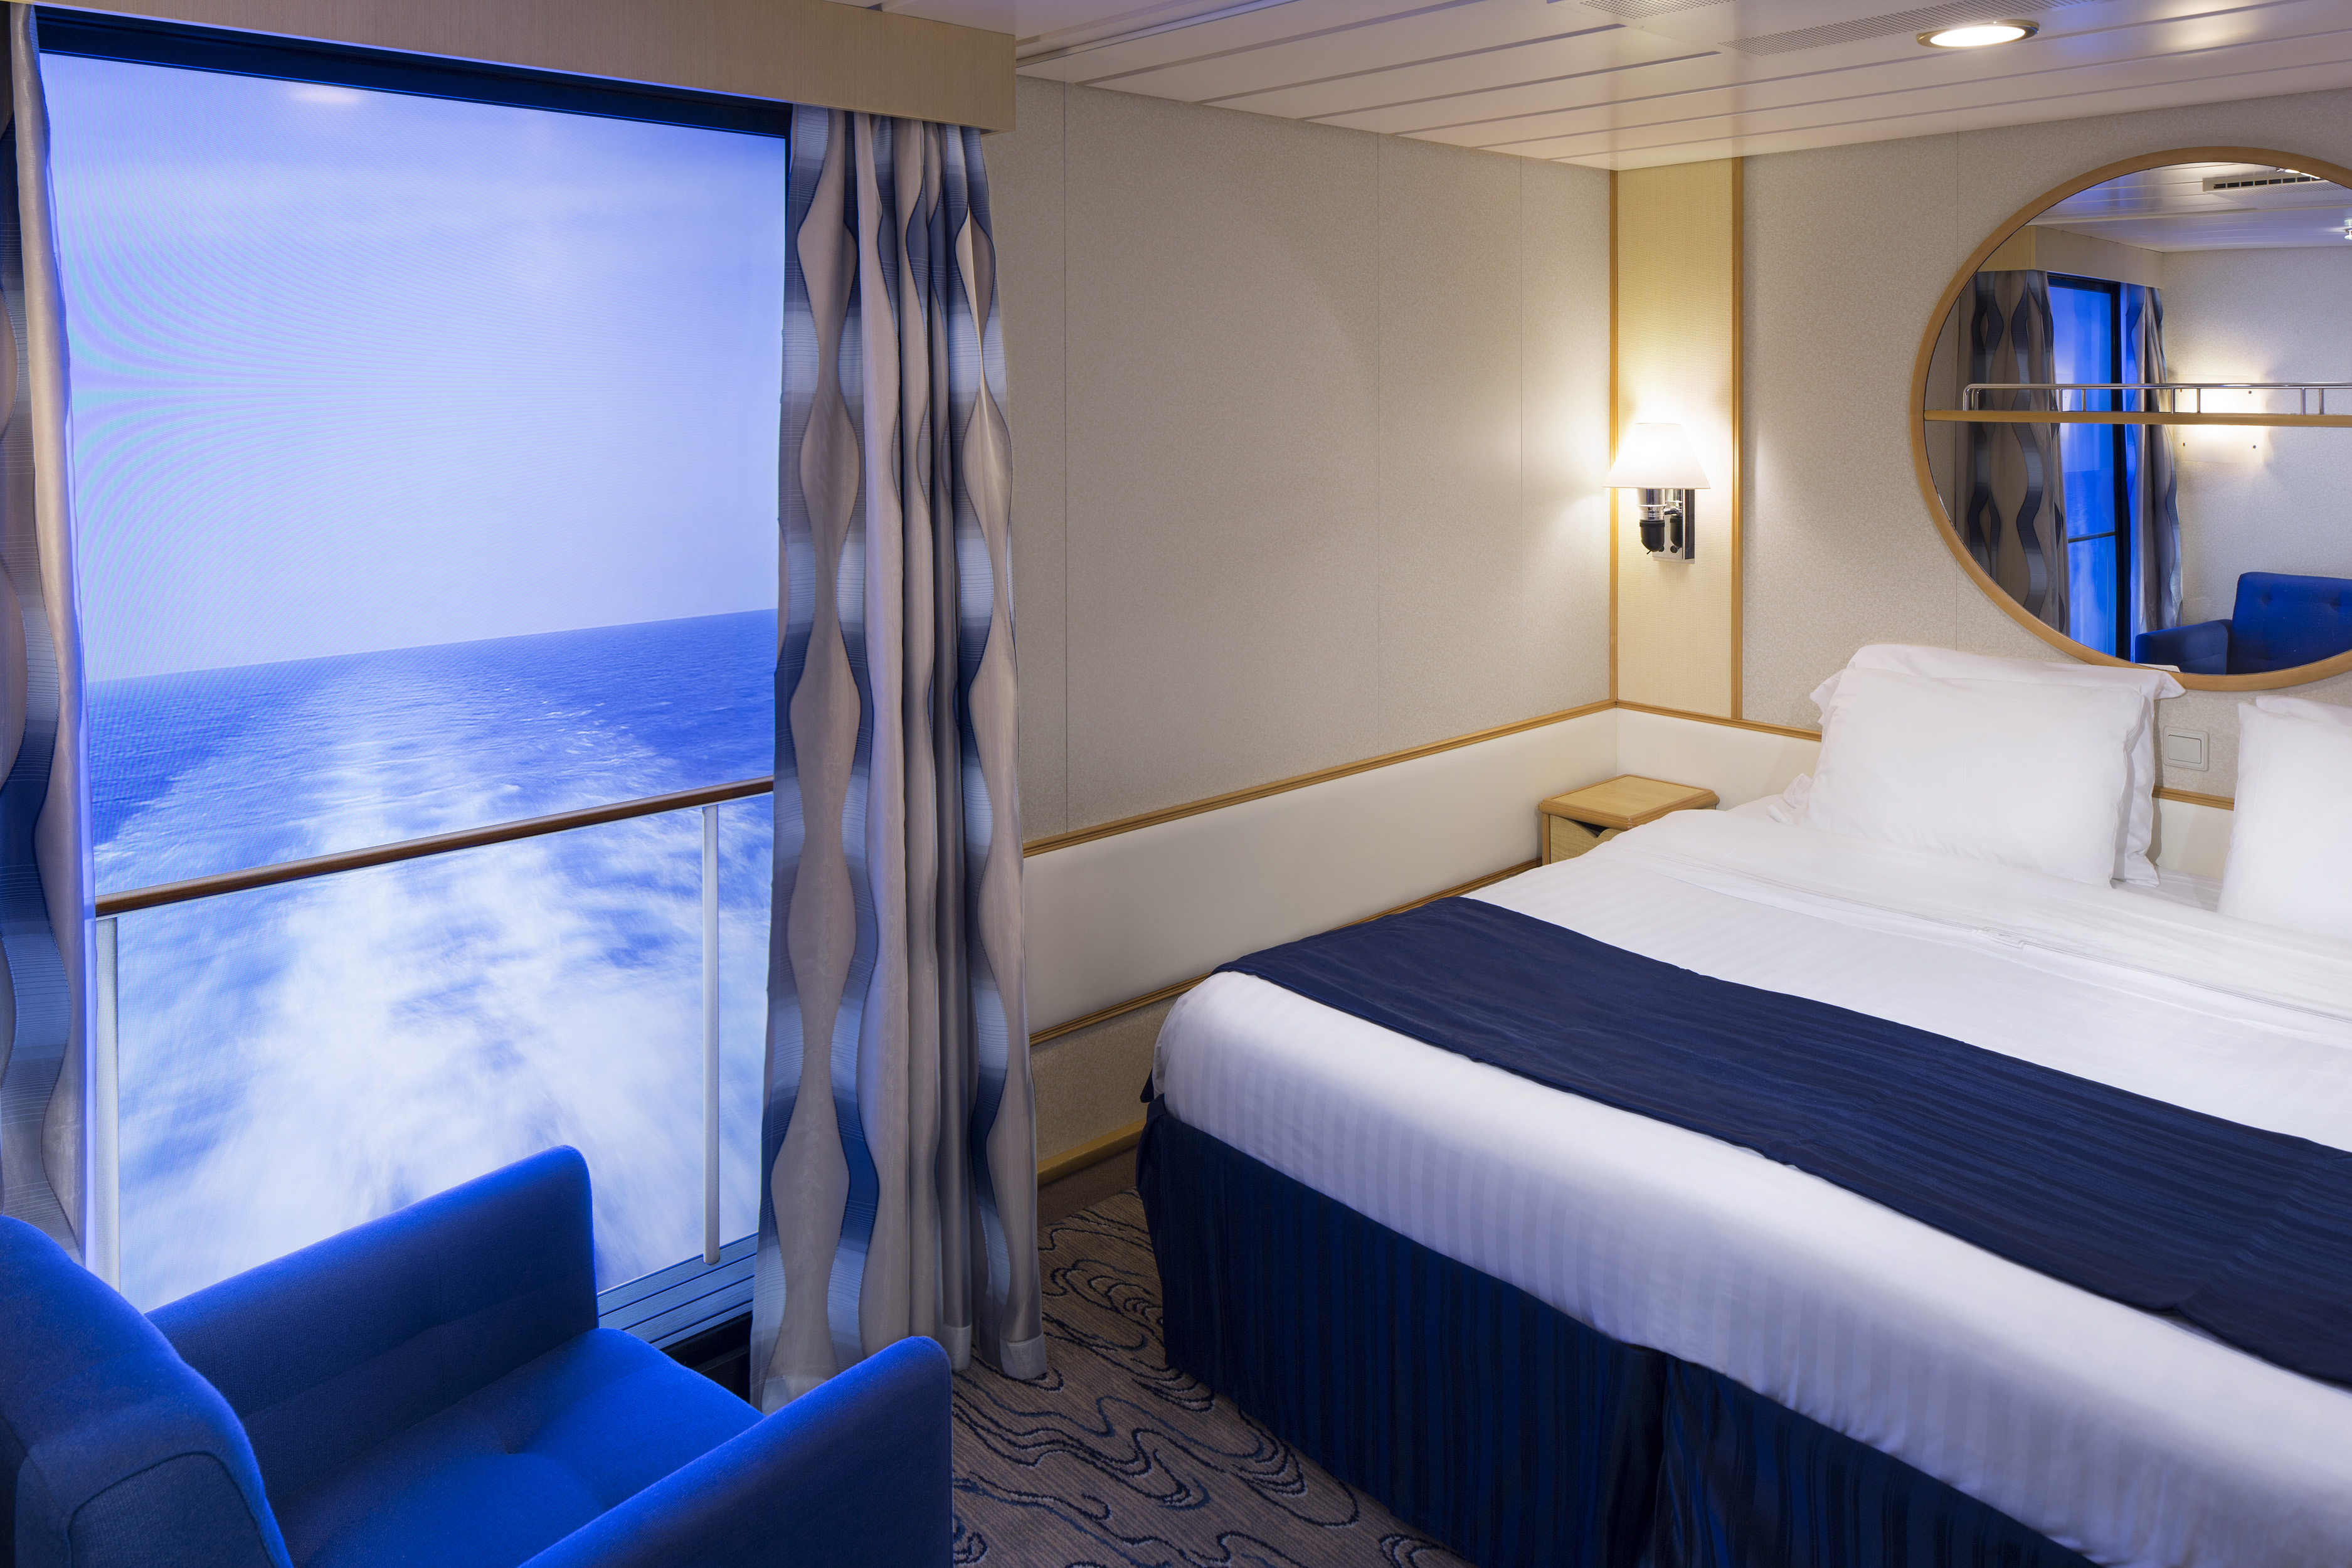 Royal Caribbean International Navigator of the Seas Accommodation Revit Virtual Balcony K.jpg